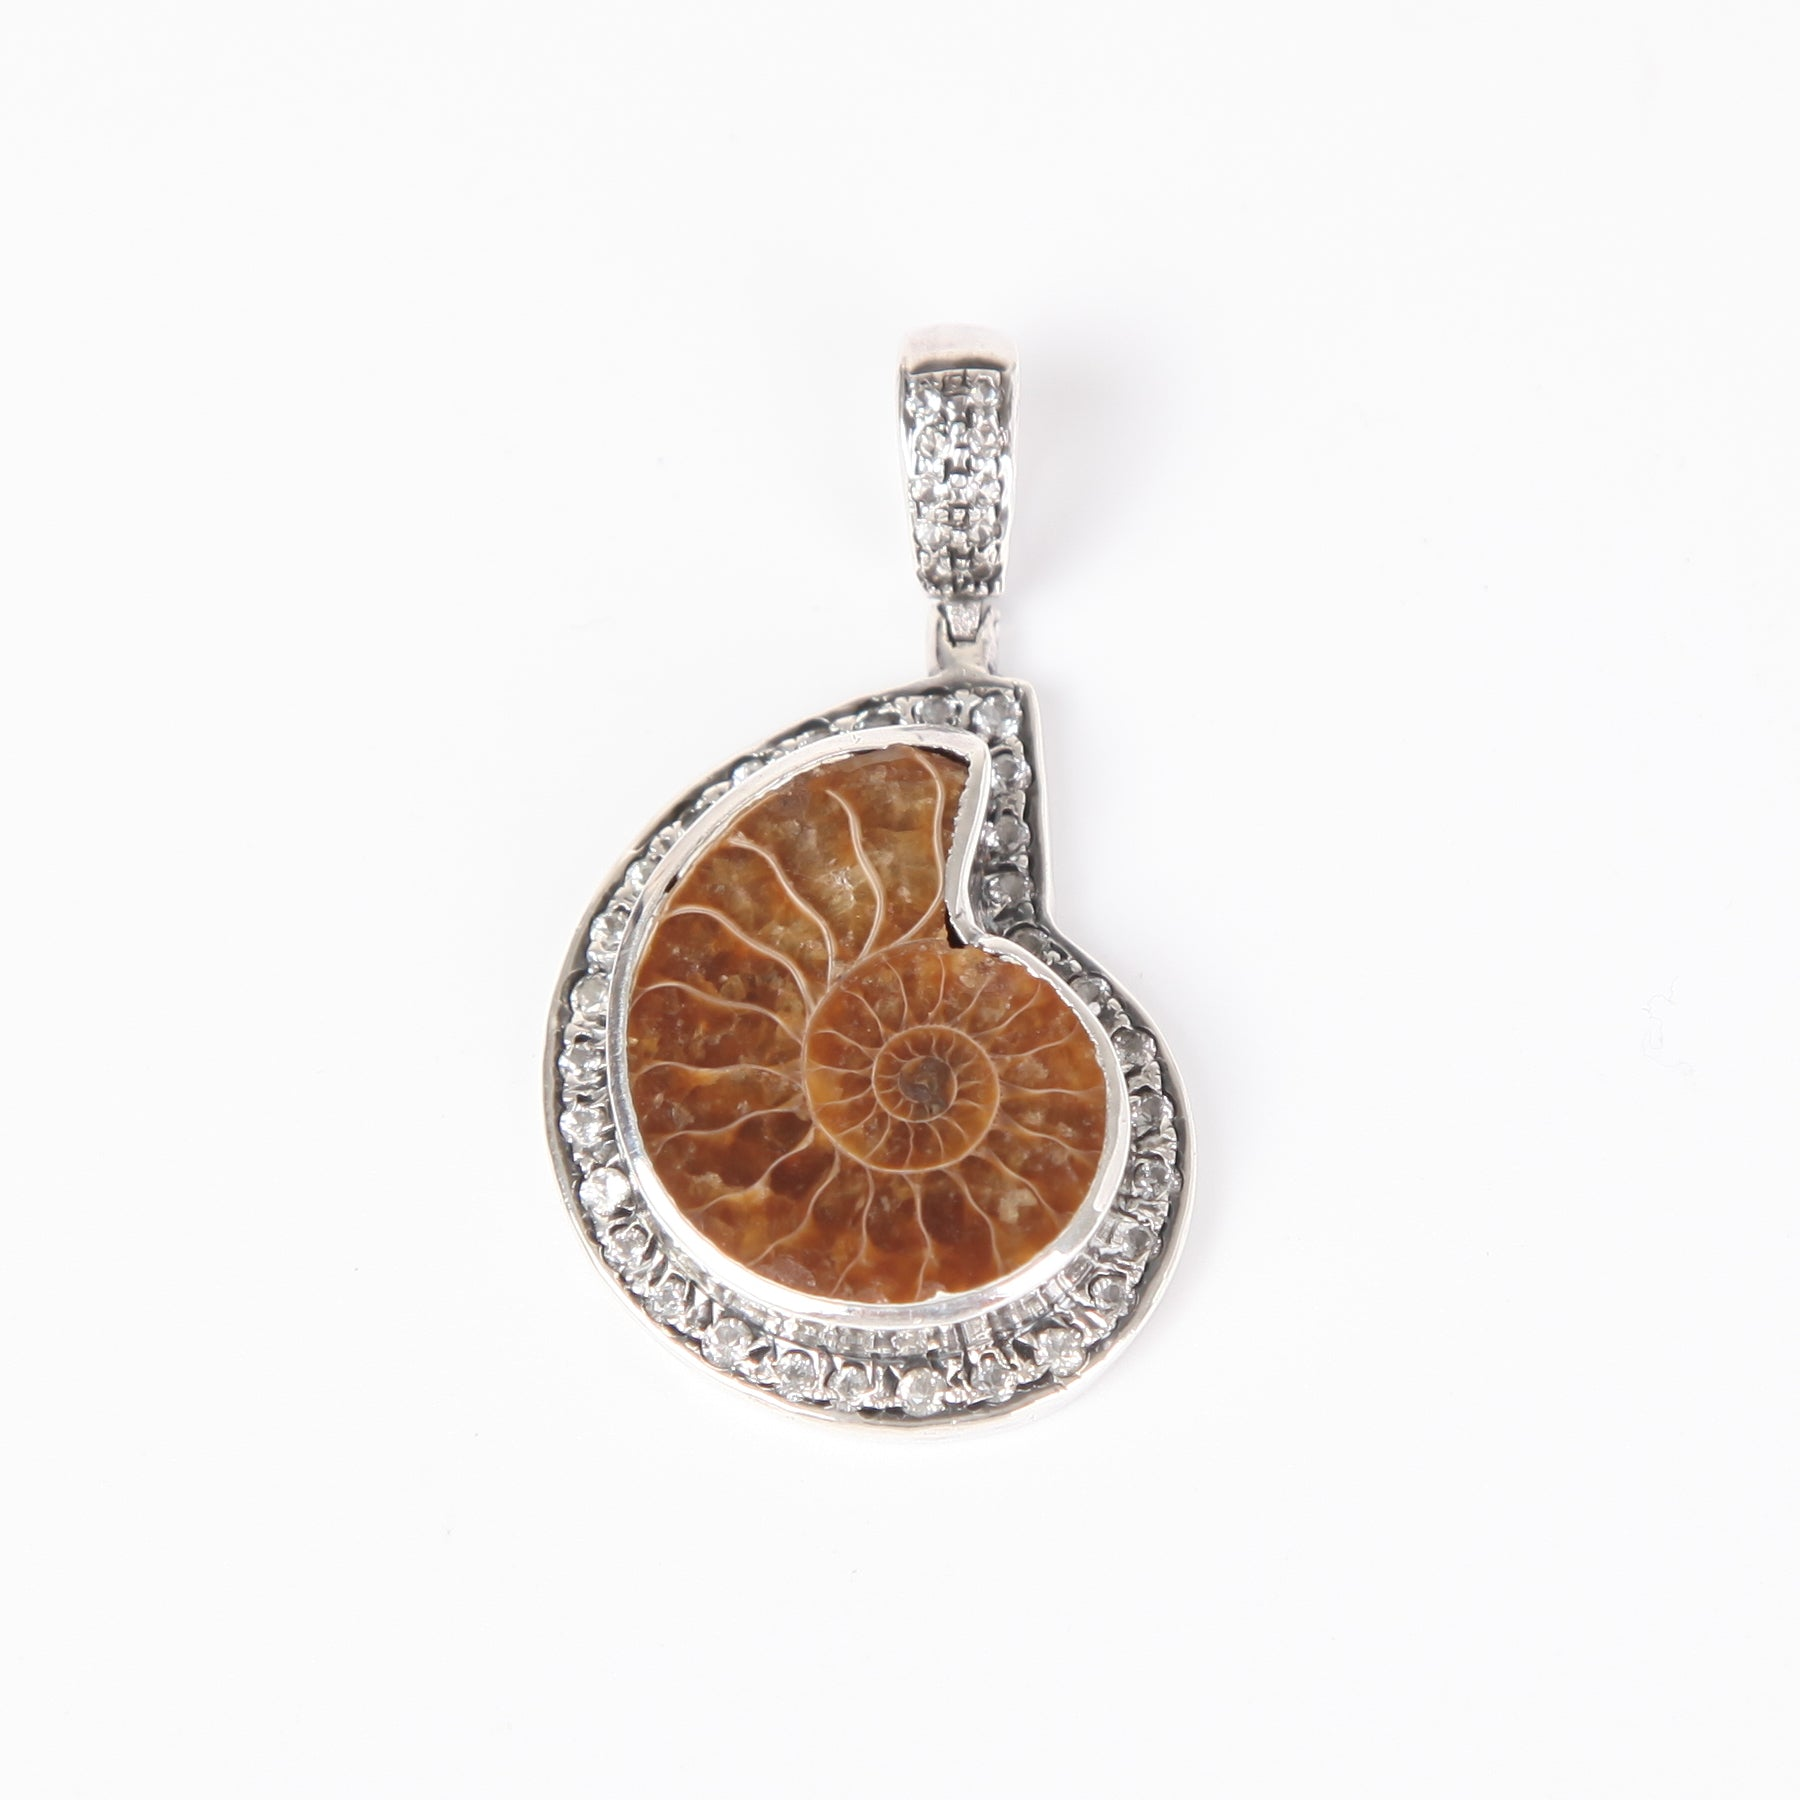 Ammonite Pendant with Zircon and Sterling Silver